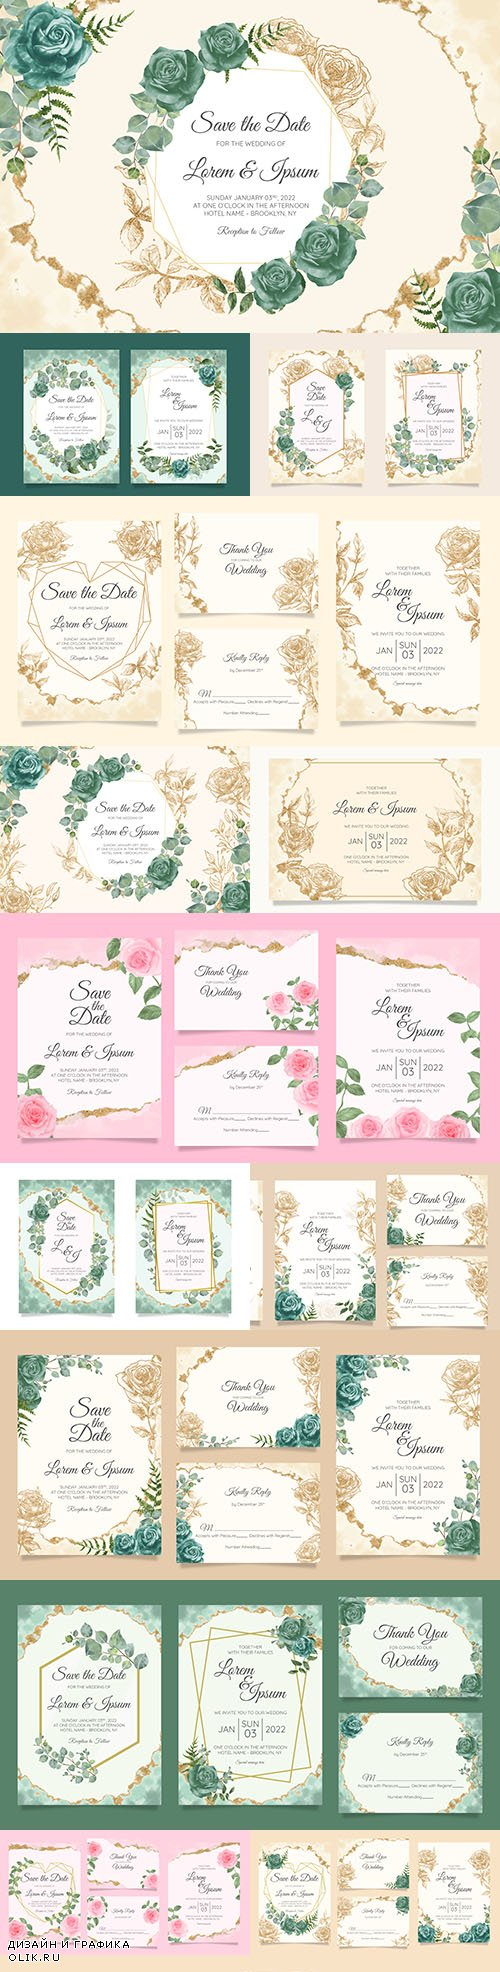 Wedding floral watercolor decorative invitations 21